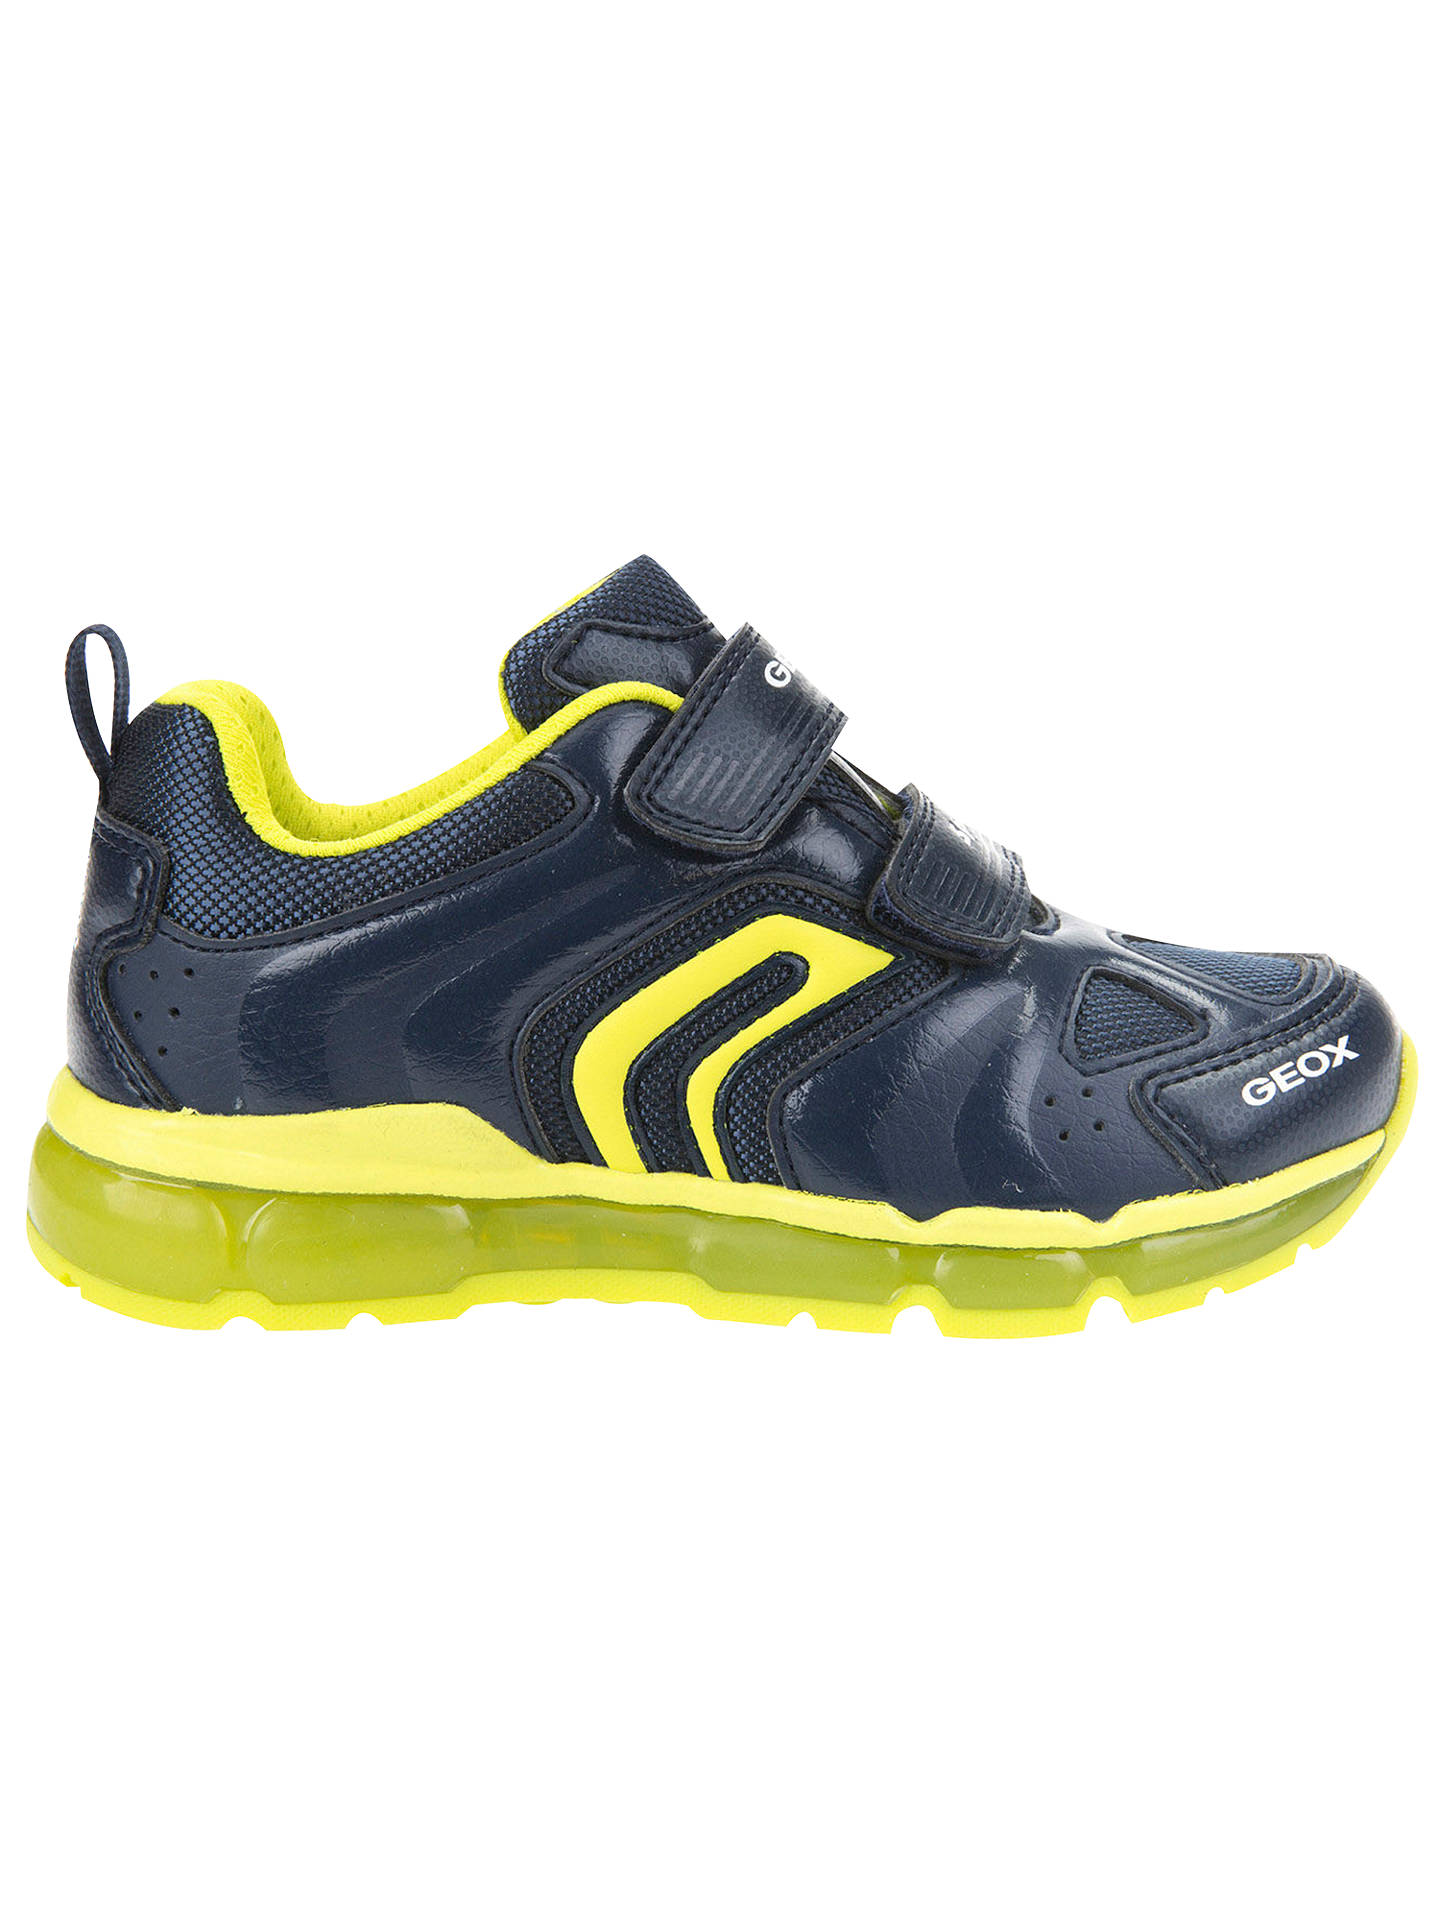 e035b9bbd6e5 Buy Geox Children's J Android Double Riptape Trainers, Navy/Lime, 28 Online  at ...